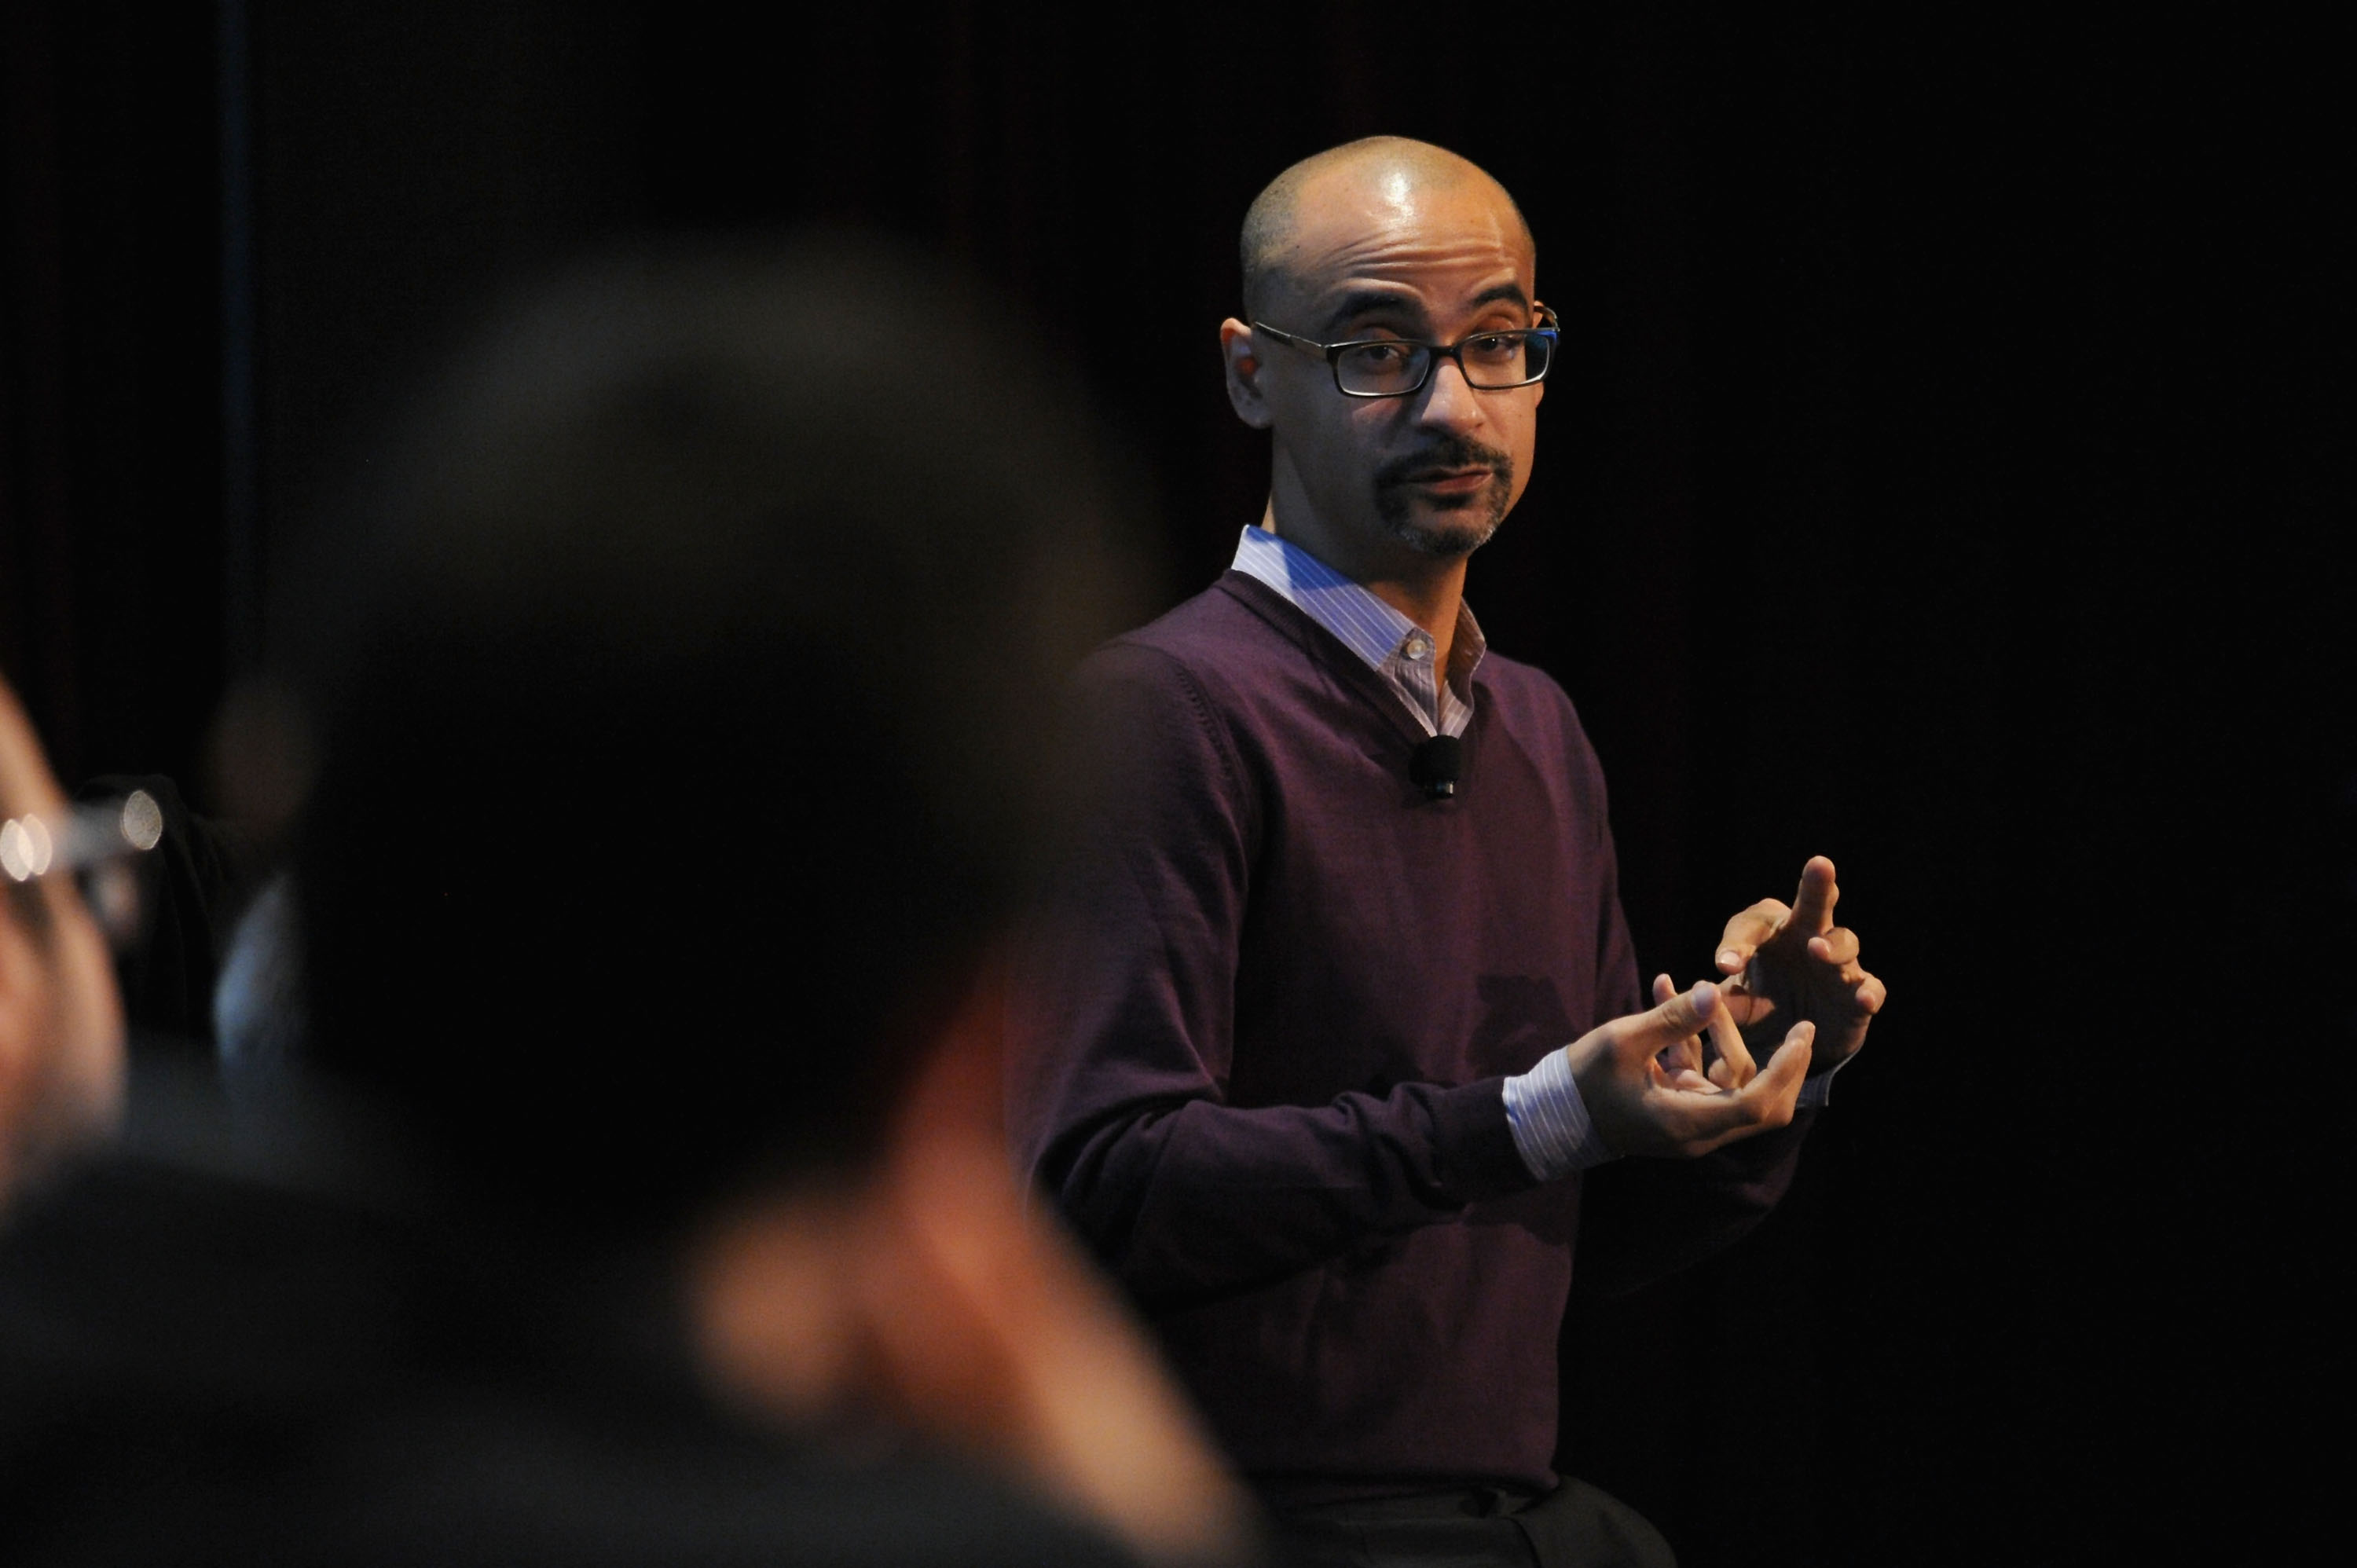 """Junot Díaz on Immigrant Communities: """"Our Legacy Is That We Overcome Monsters"""""""